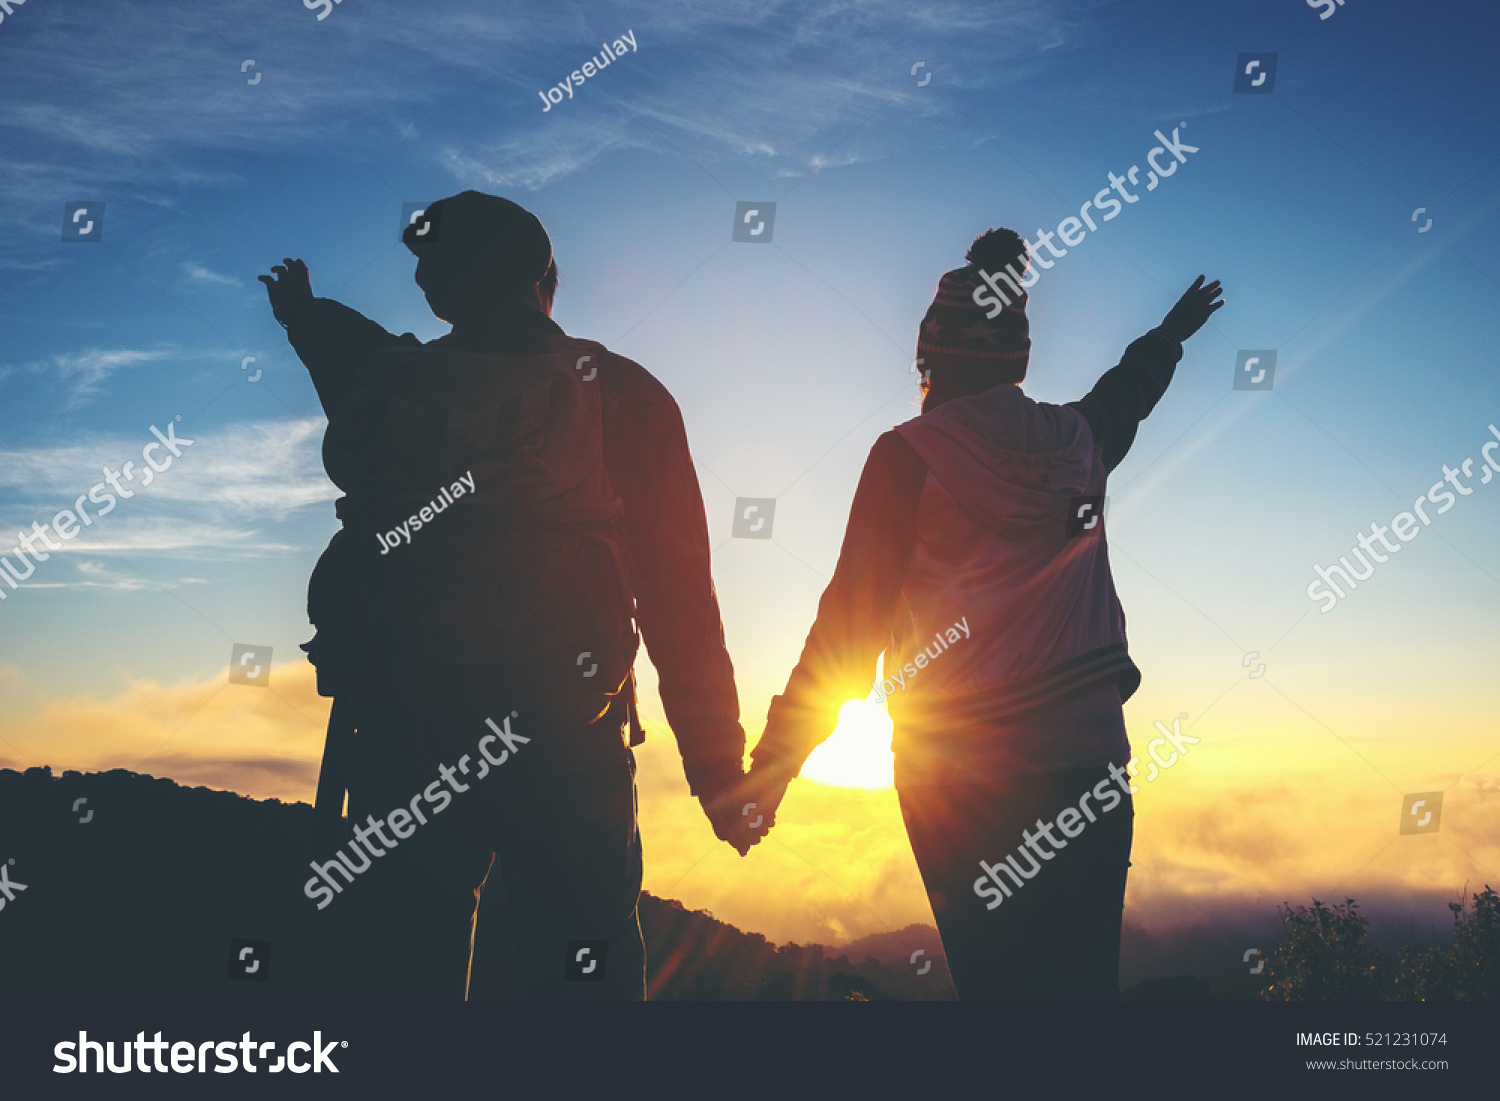 Silhouette Couple Holding Hands Sunset Romantic Stock Photo ... for Couple Holding Hands Silhouette Sunset  150ifm